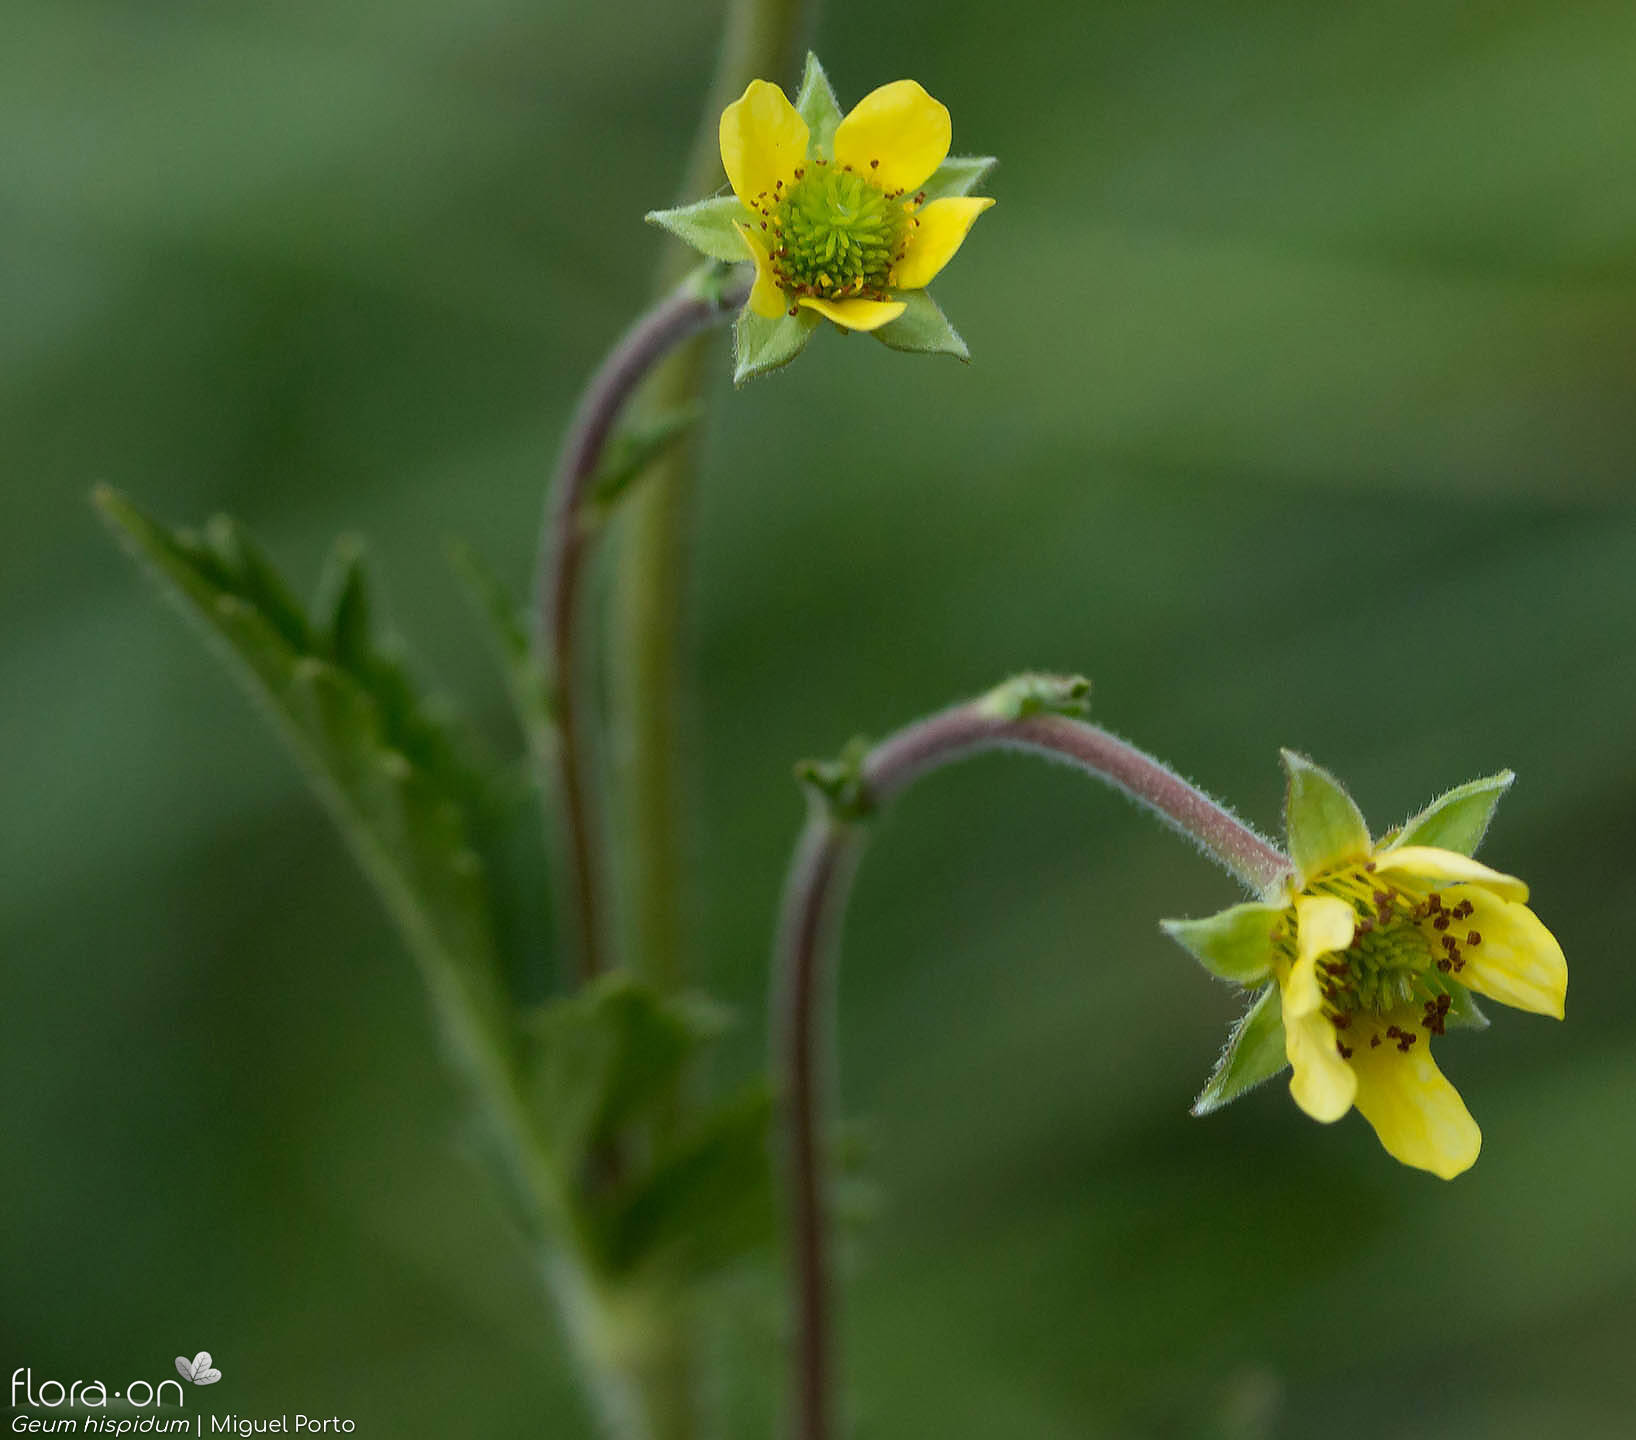 Geum hispidum - Flor (close-up) | Miguel Porto; CC BY-NC 4.0